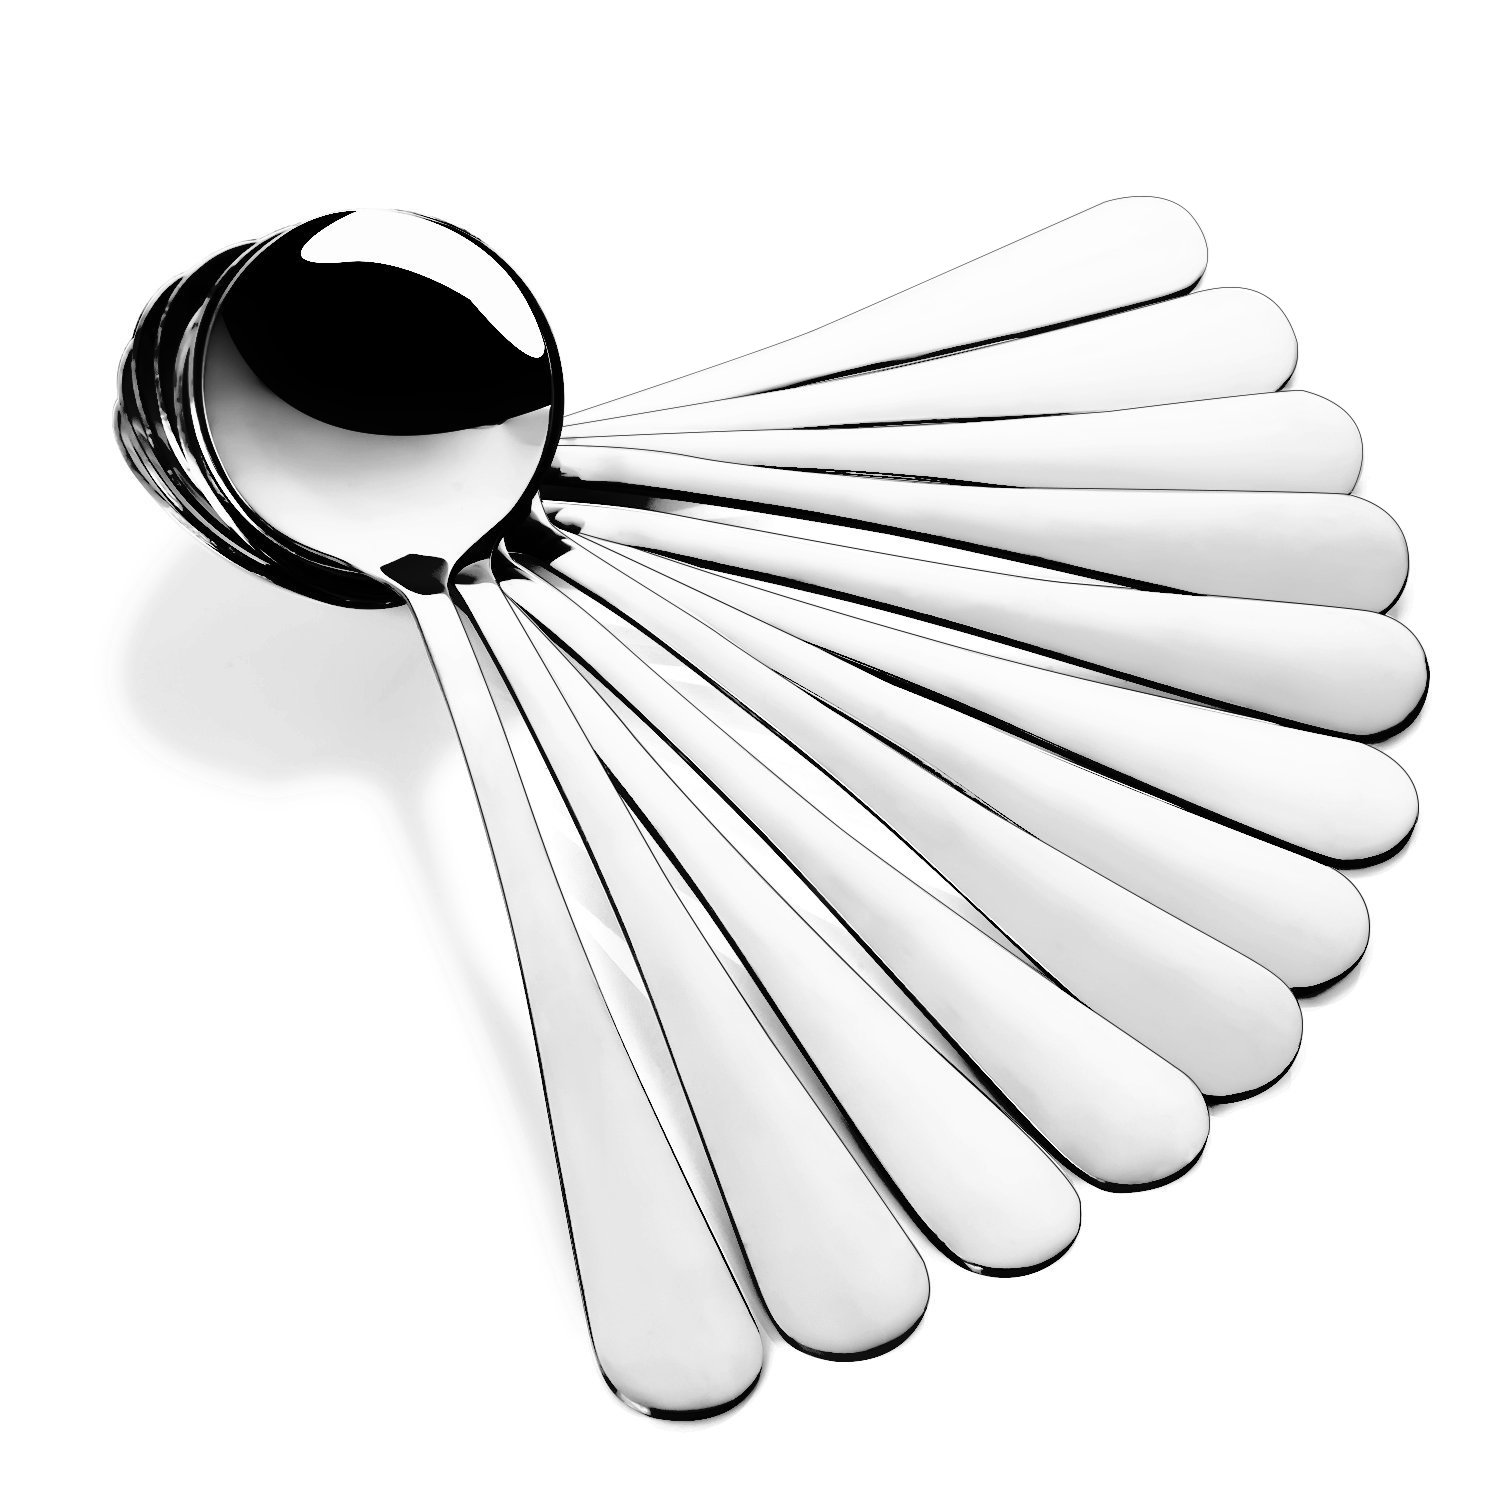 Hiware Soup Spoons, Round Stainless Steel Bouillon Spoons, Set of 12 HSS675